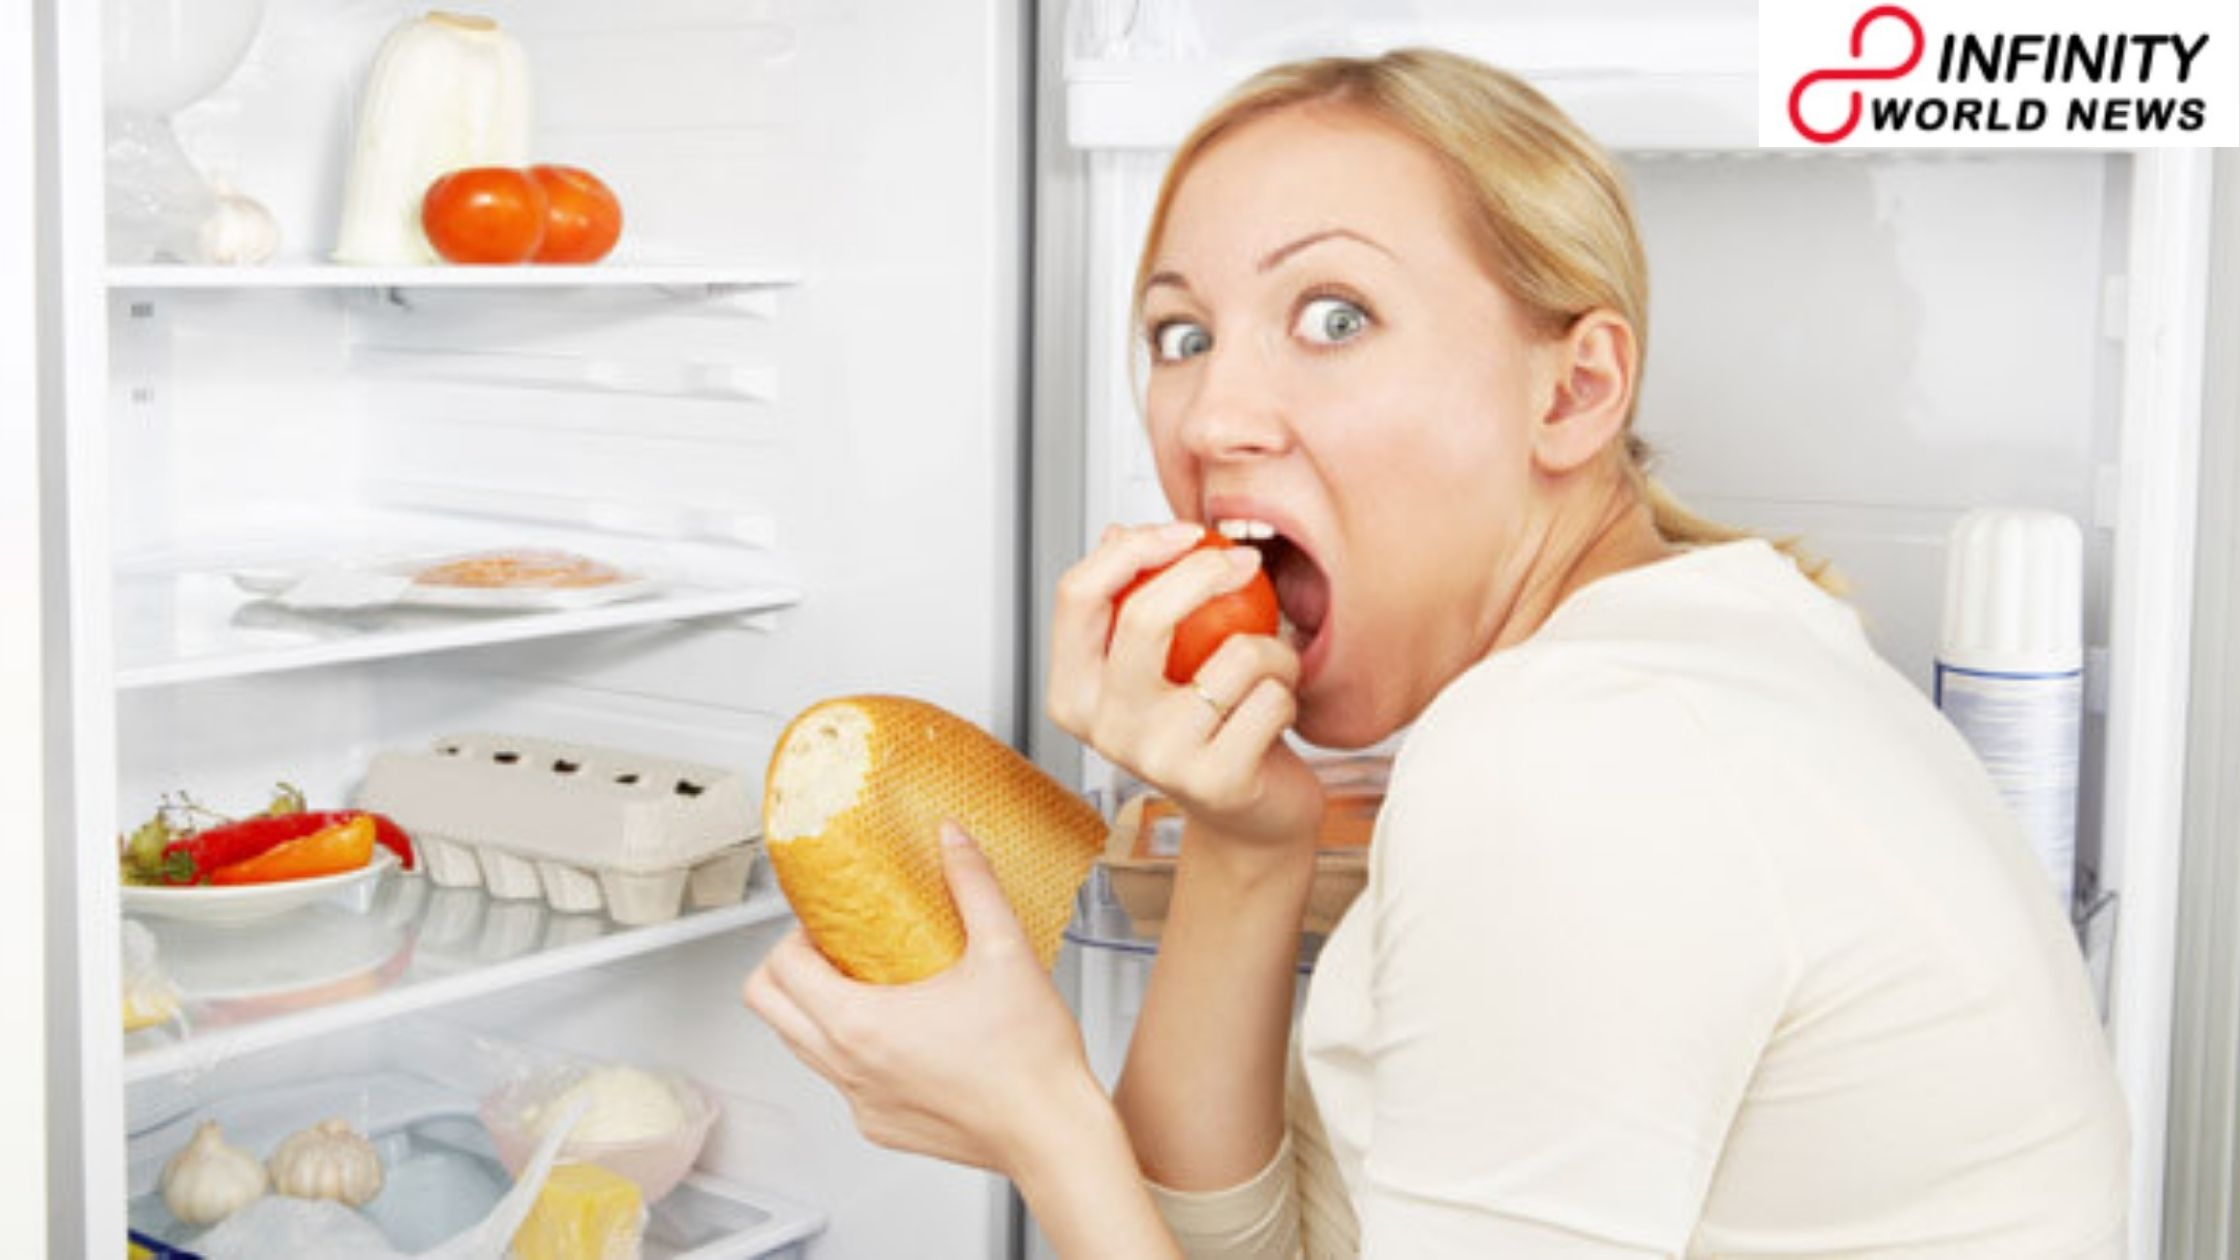 Health Guide: What is Bulimia? Know indications, complexities, treatment